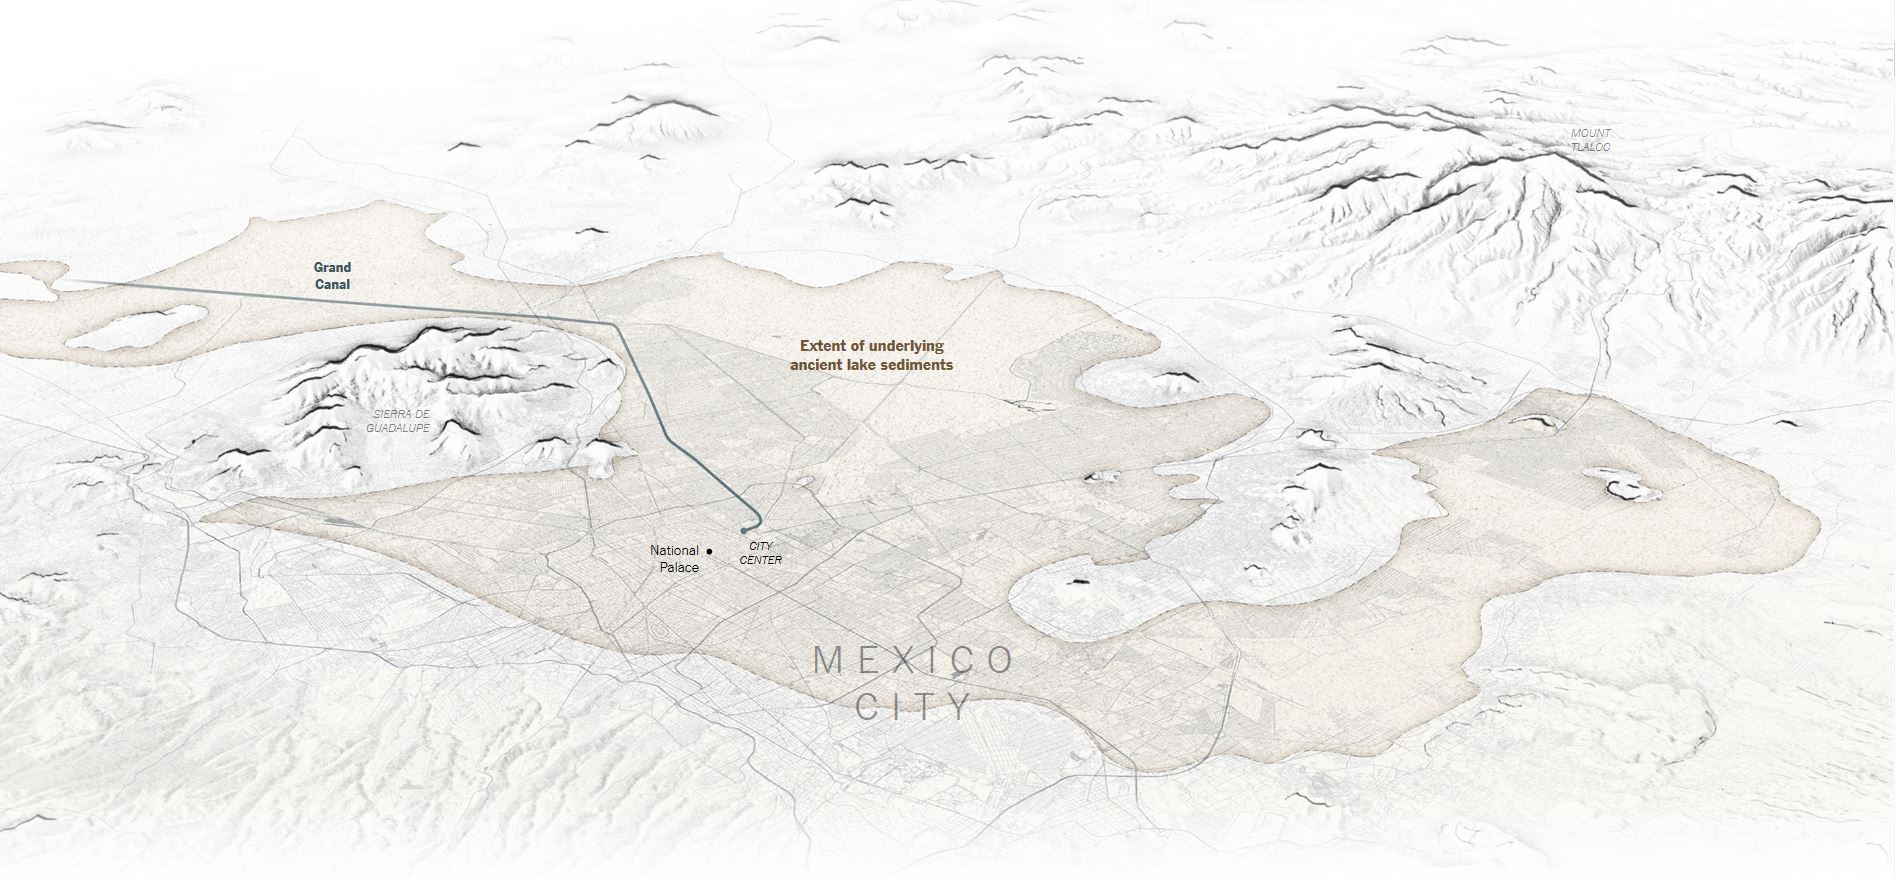 Mexico City Climate Hydrology And Invisible Rivers Hidden - Mexico climate map